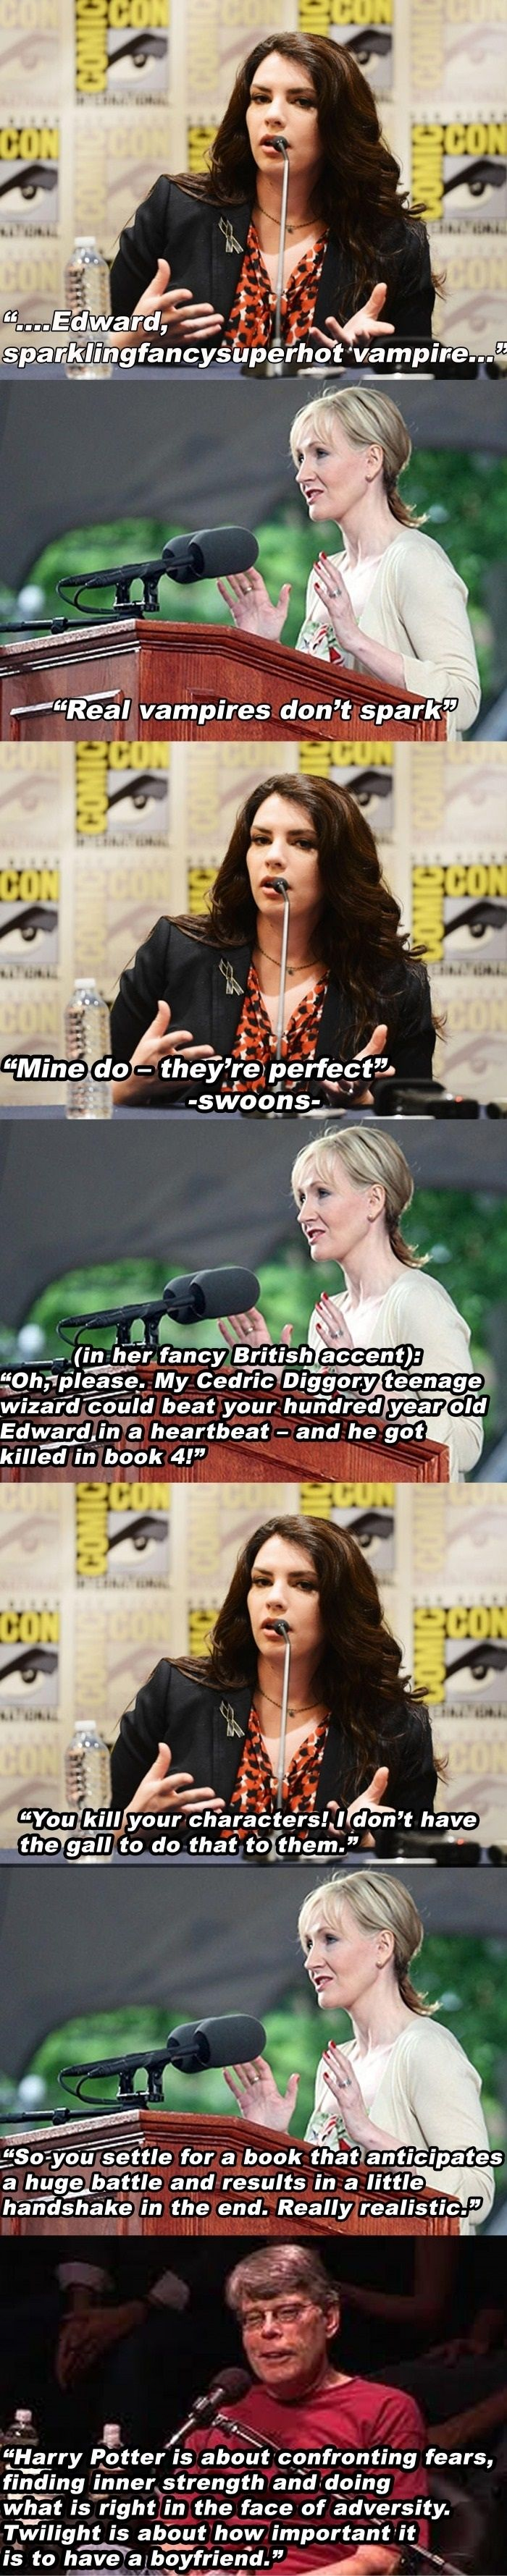 Meyer & Rowling debate // funny pictures - funny photos - funny images - funny pics - funny quotes - #lol #humor #funnypictures